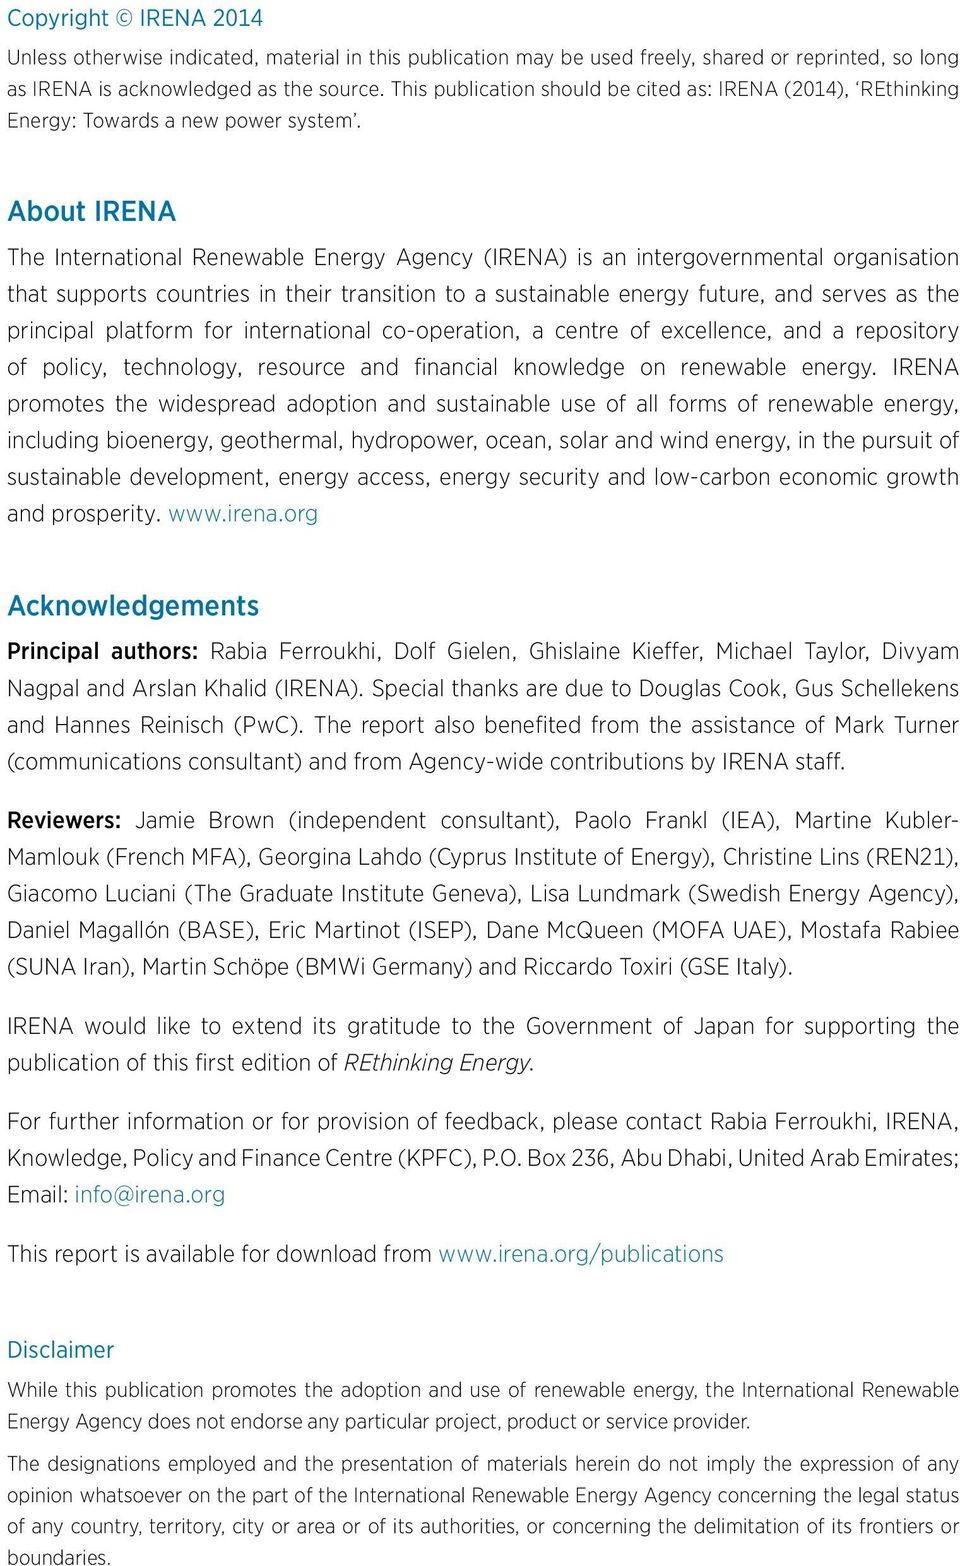 About IRENA The International Renewable Energy Agency (IRENA) is an intergovernmental organisation that supports countries in their transition to a sustainable energy future, and serves as the